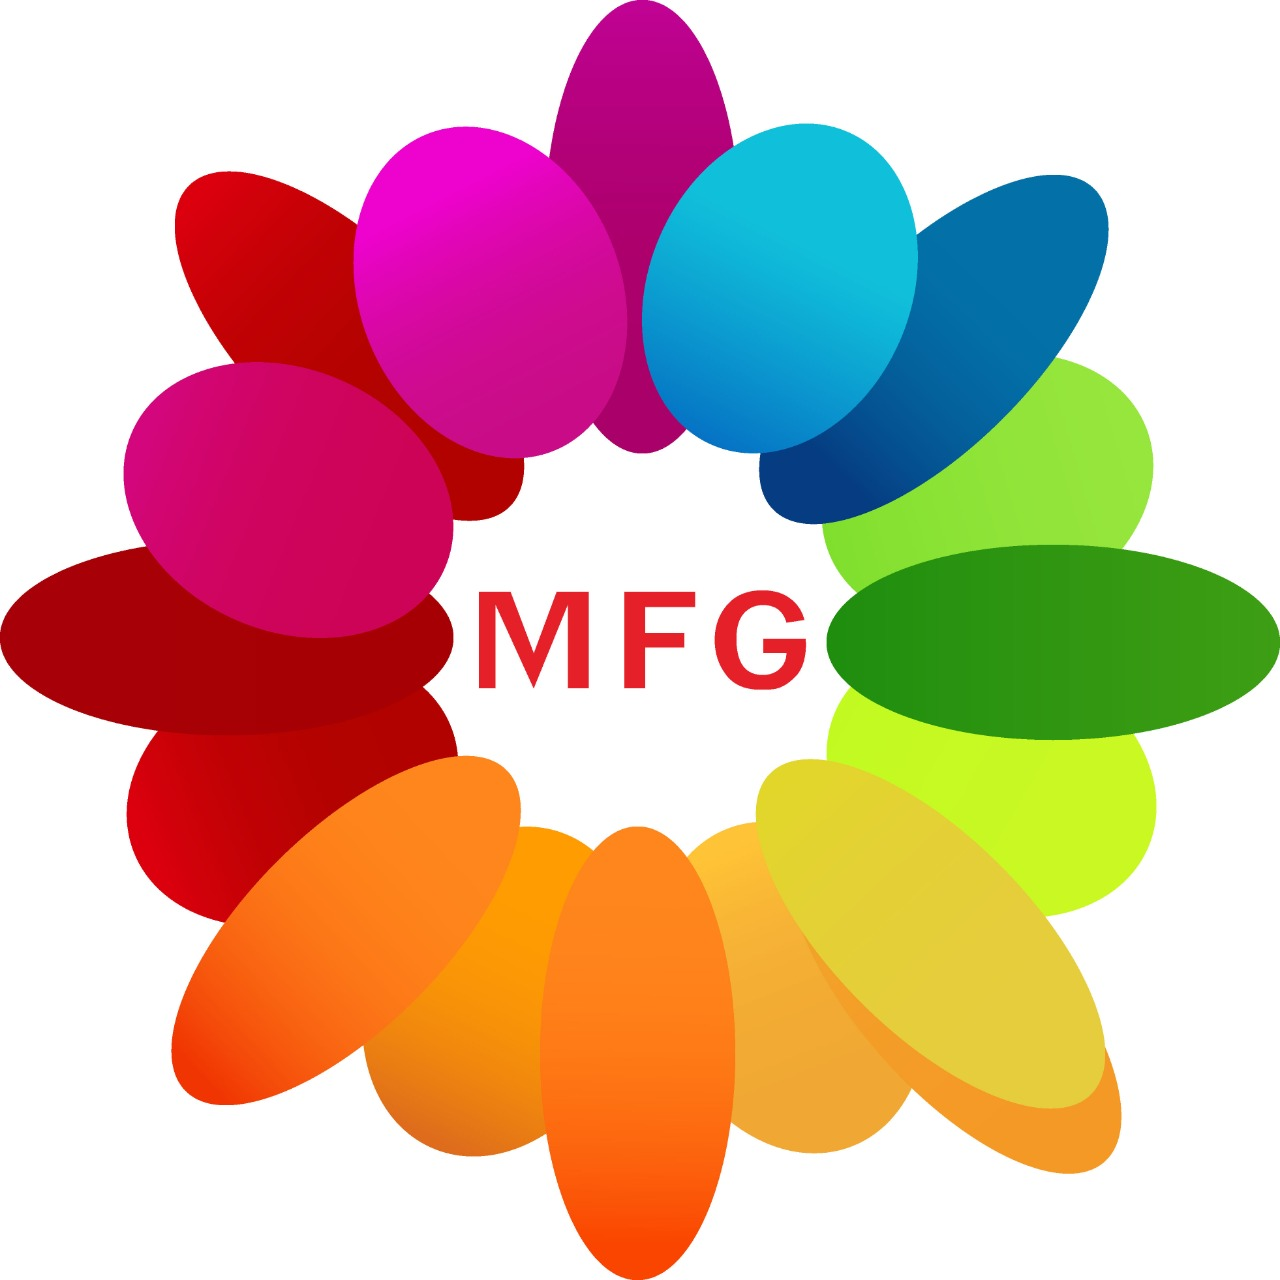 12 mix roses in glass vase with 1 pound blackforest cake, celebration chocolate box along with 6 inch cute teddy